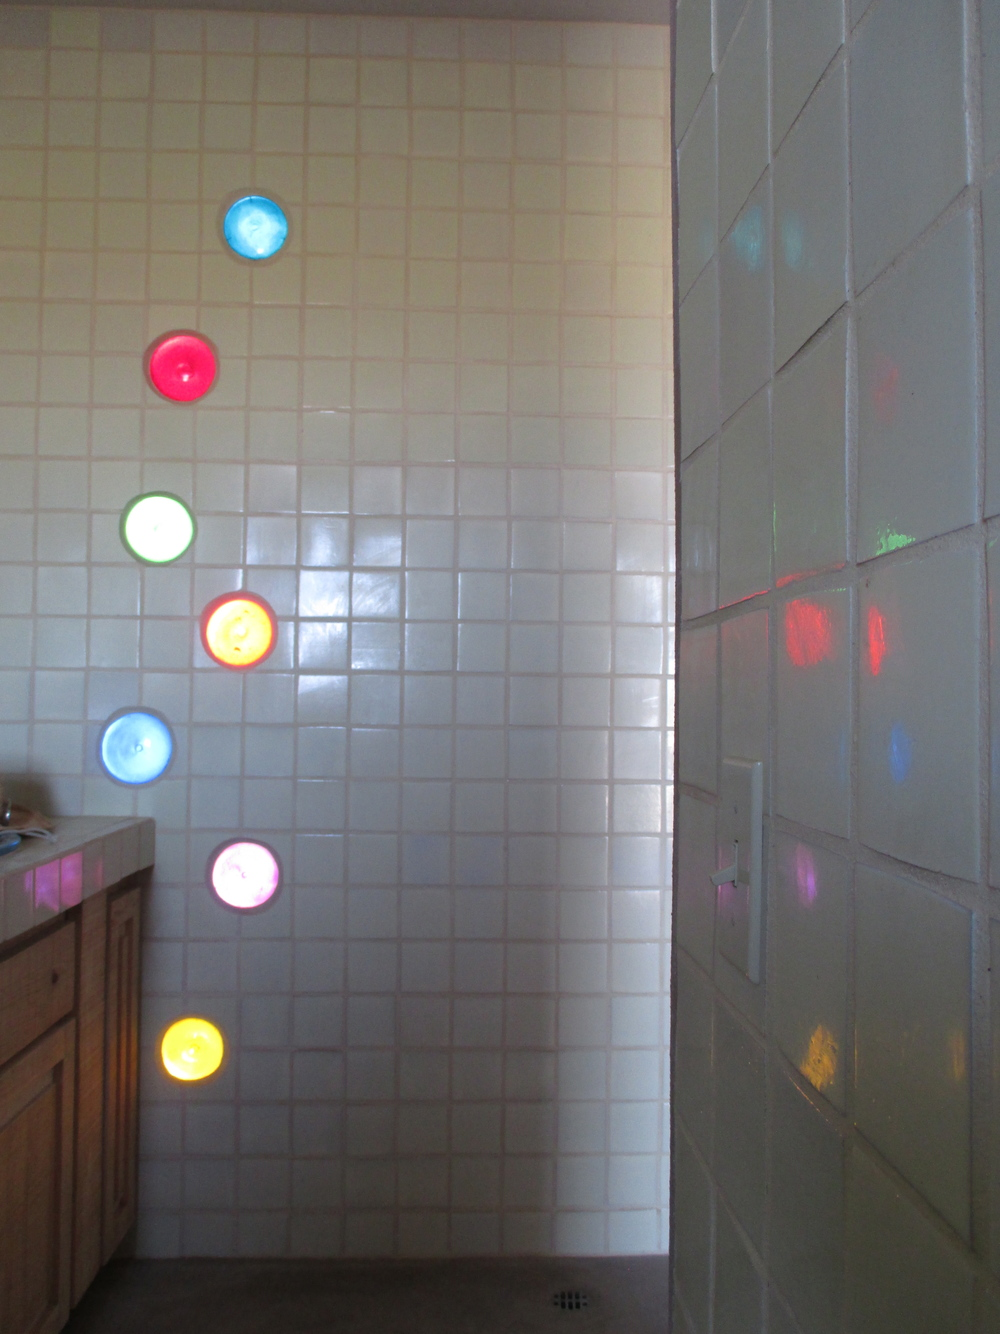 The discs at sunset lighting up the shower room!